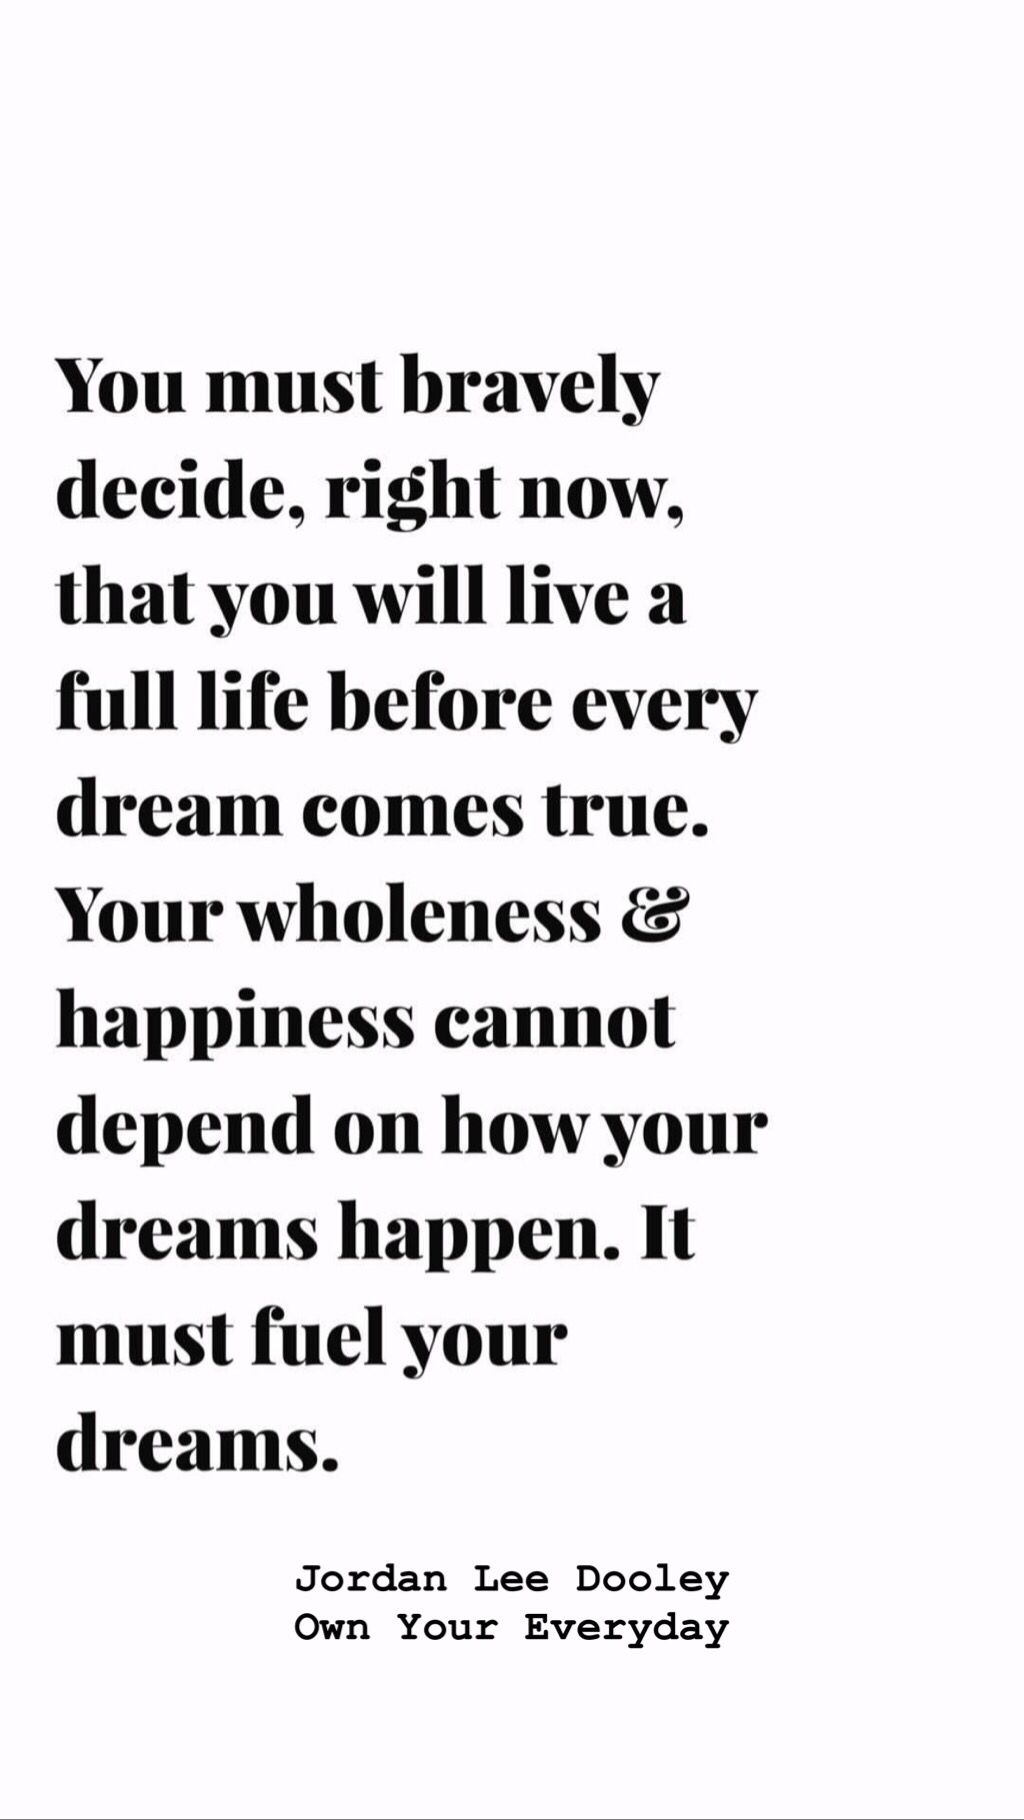 Own Your Everyday Jordan Lee Dooley Inspirational Words Words Quotes Quotable Quotes